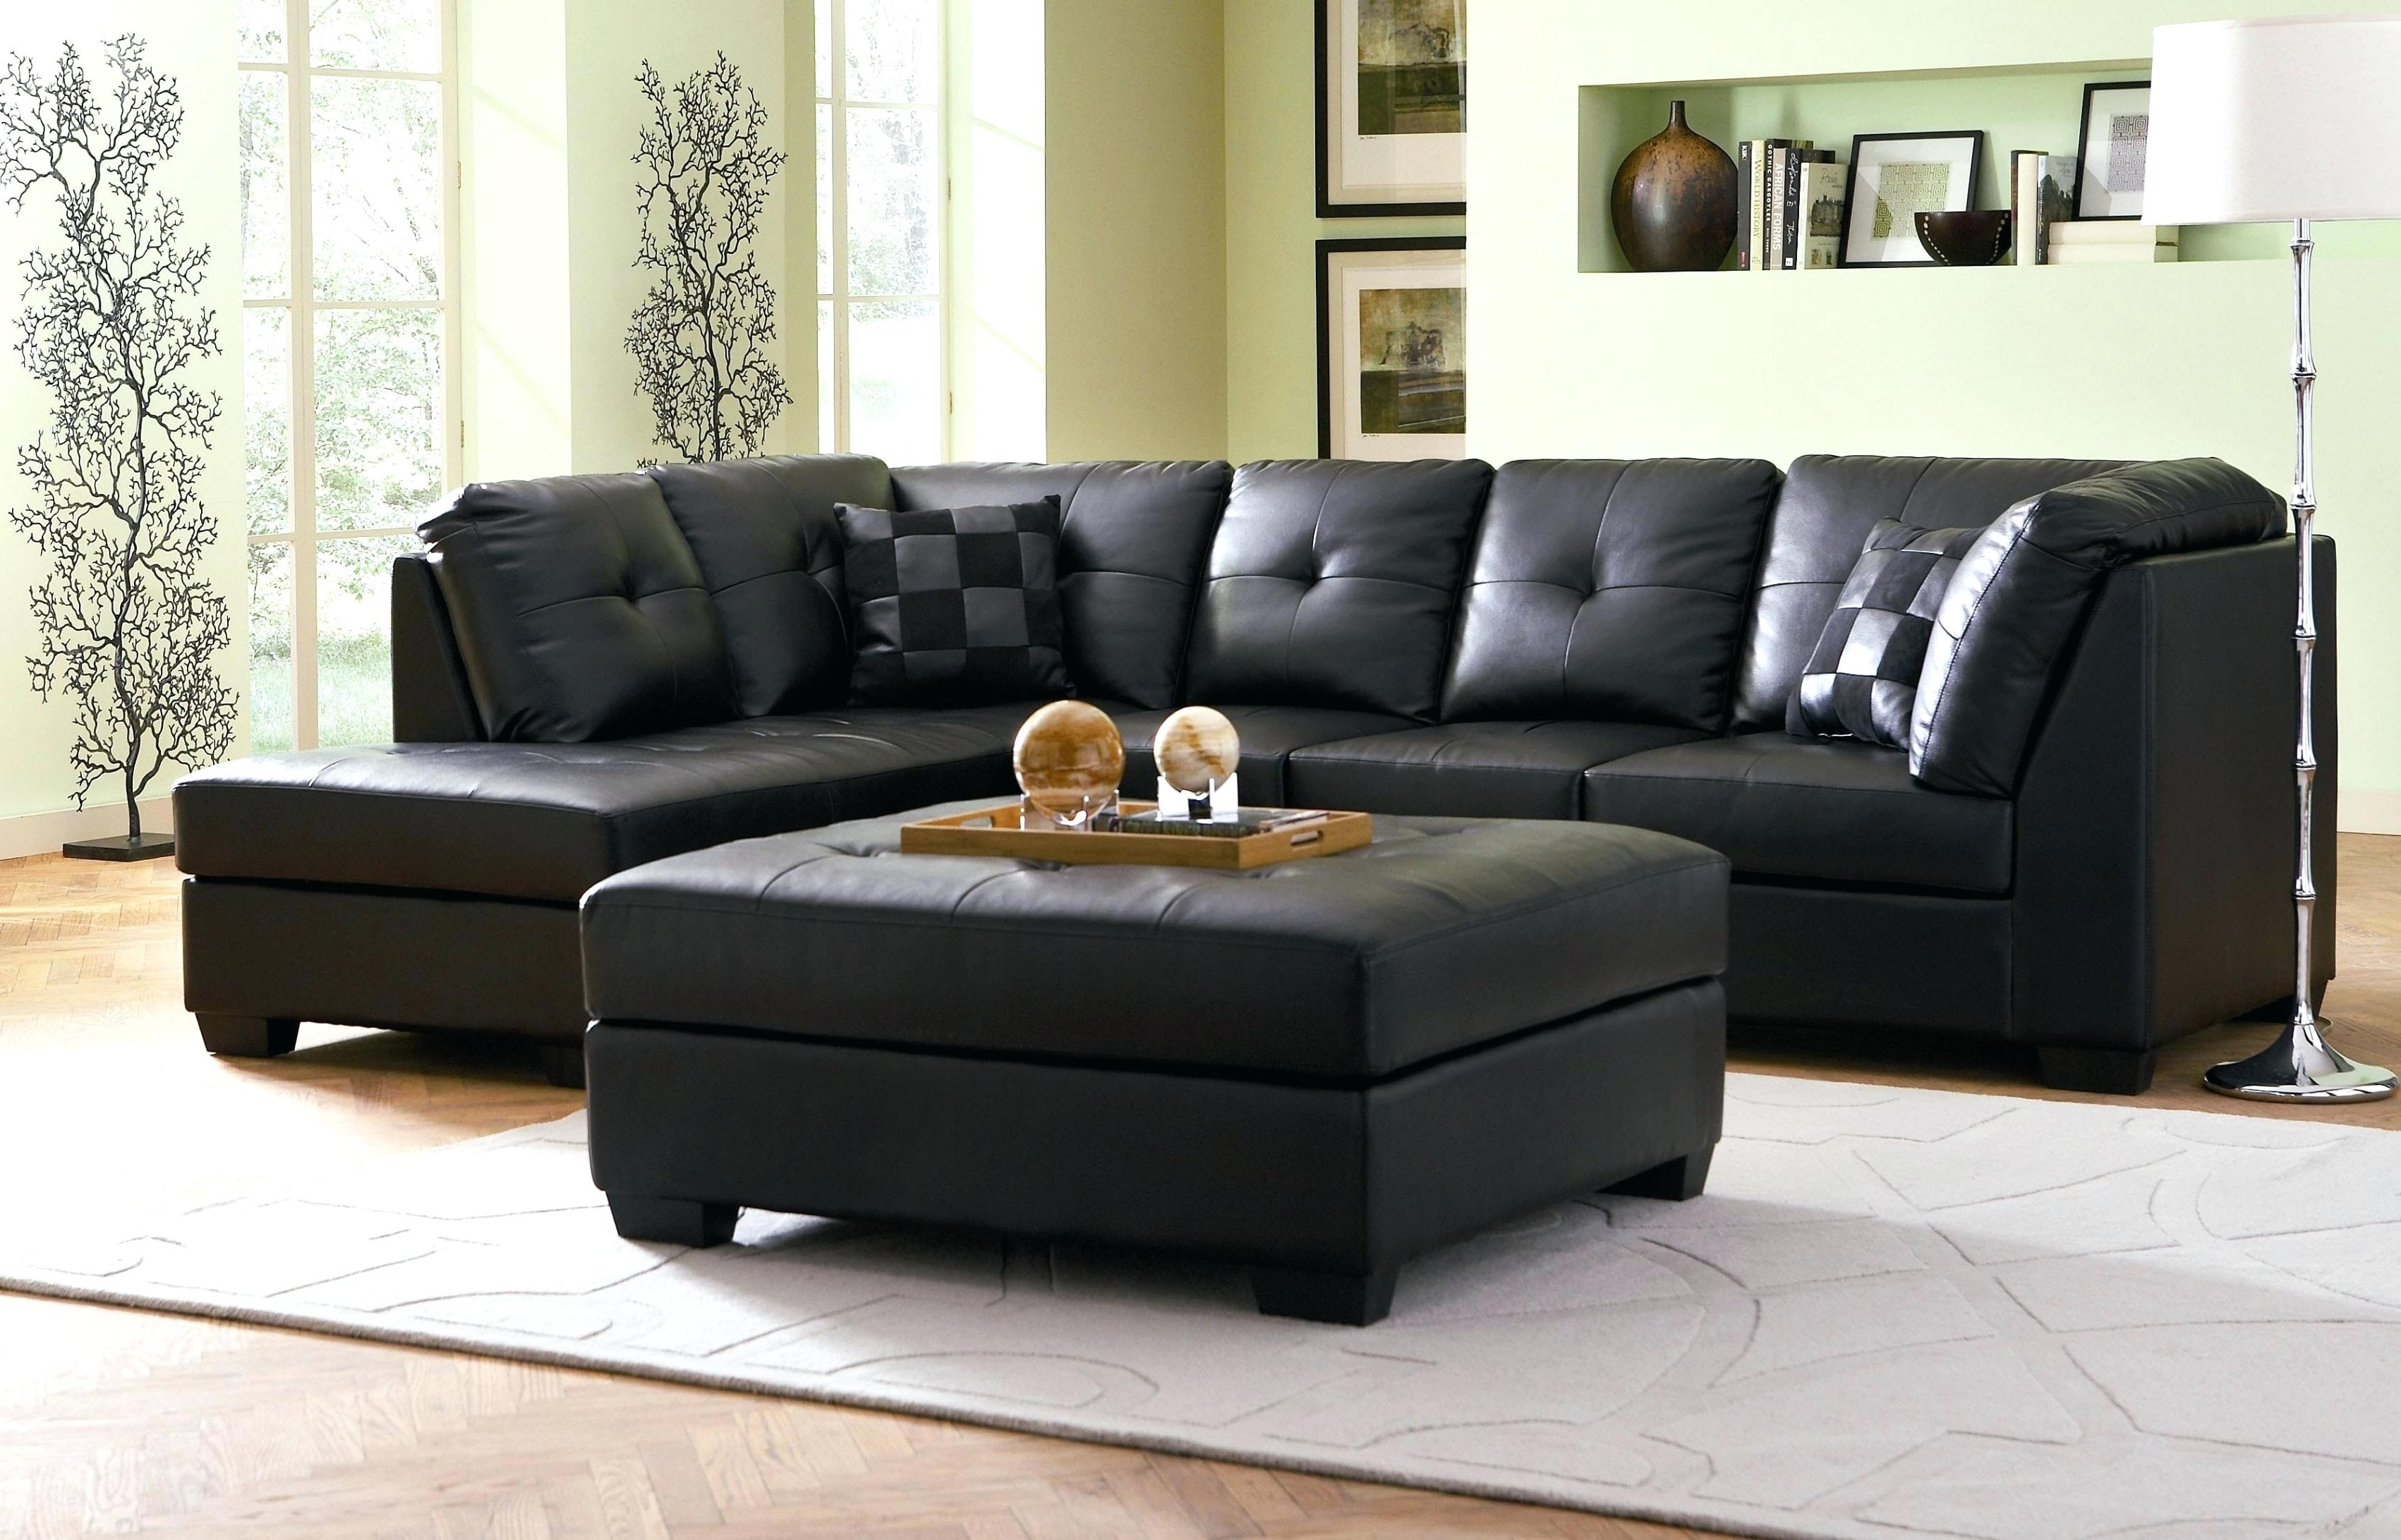 Furniture : Magnificent Cheap Sectional Sofas Under 300 Lovely With Regard To 2018 Sectional Sofas Under  (View 7 of 15)